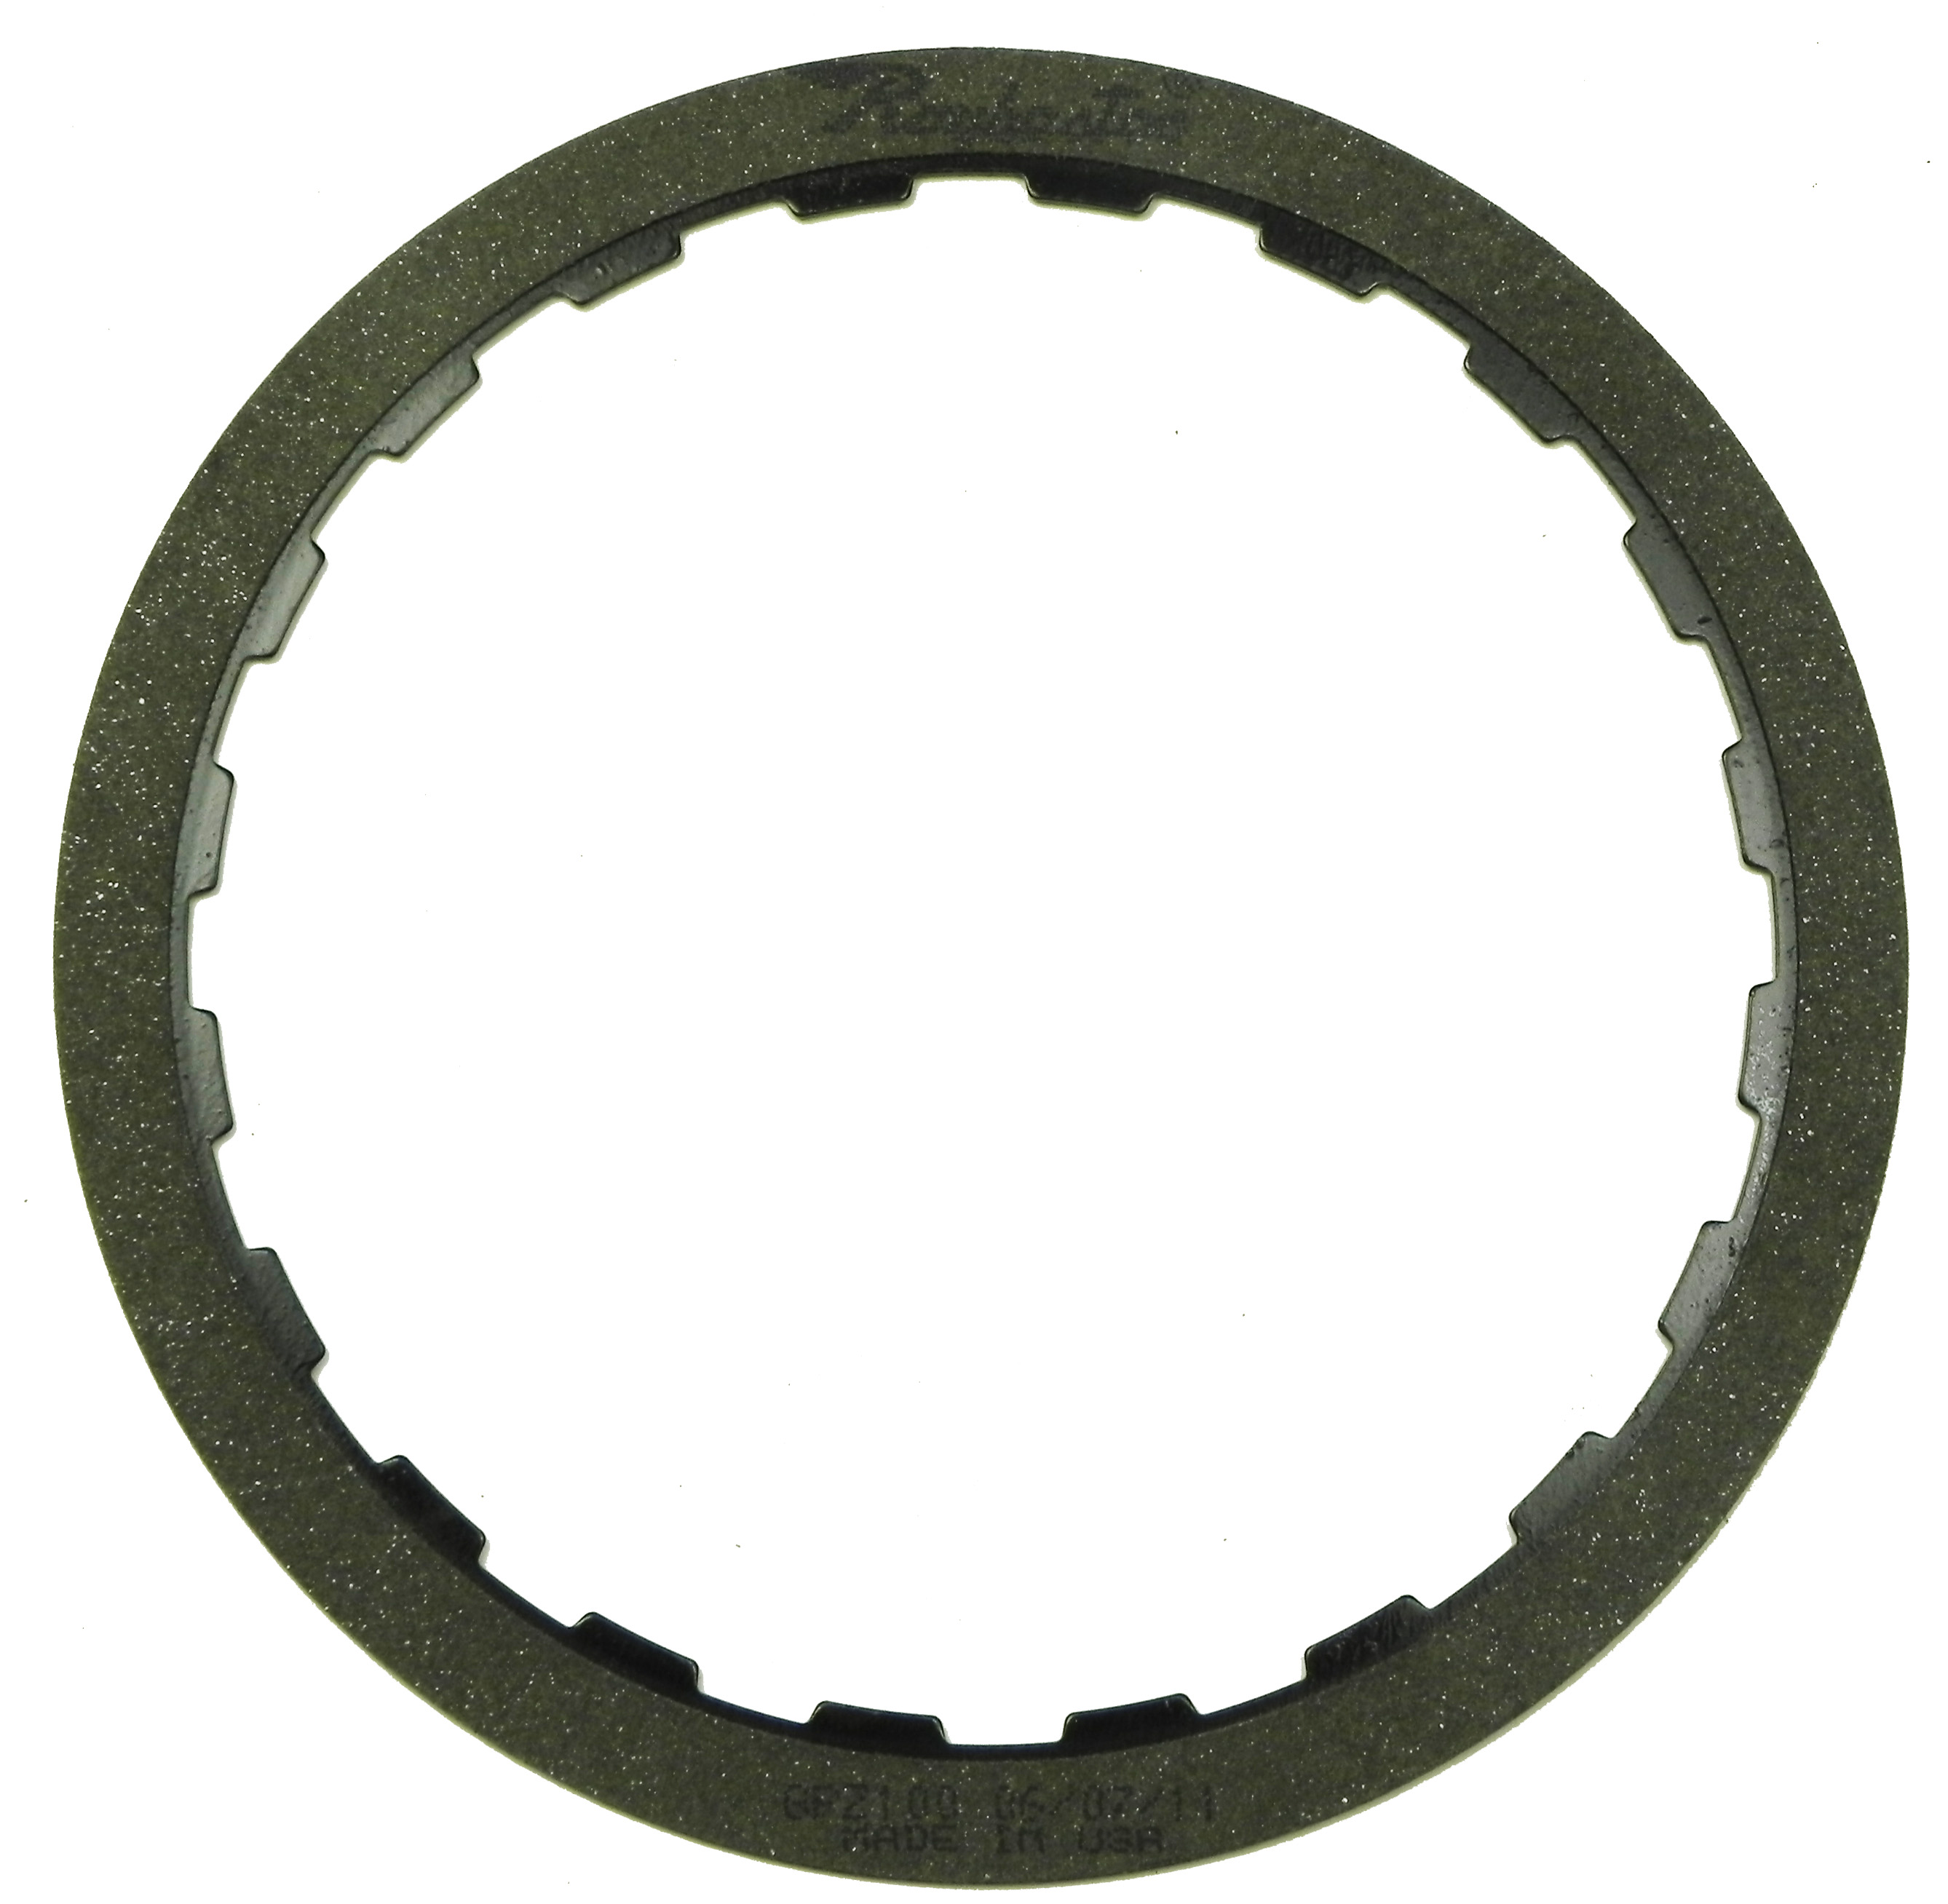 4L60, 4L60E 3-4 .080 GPZ Friction Clutch Plate